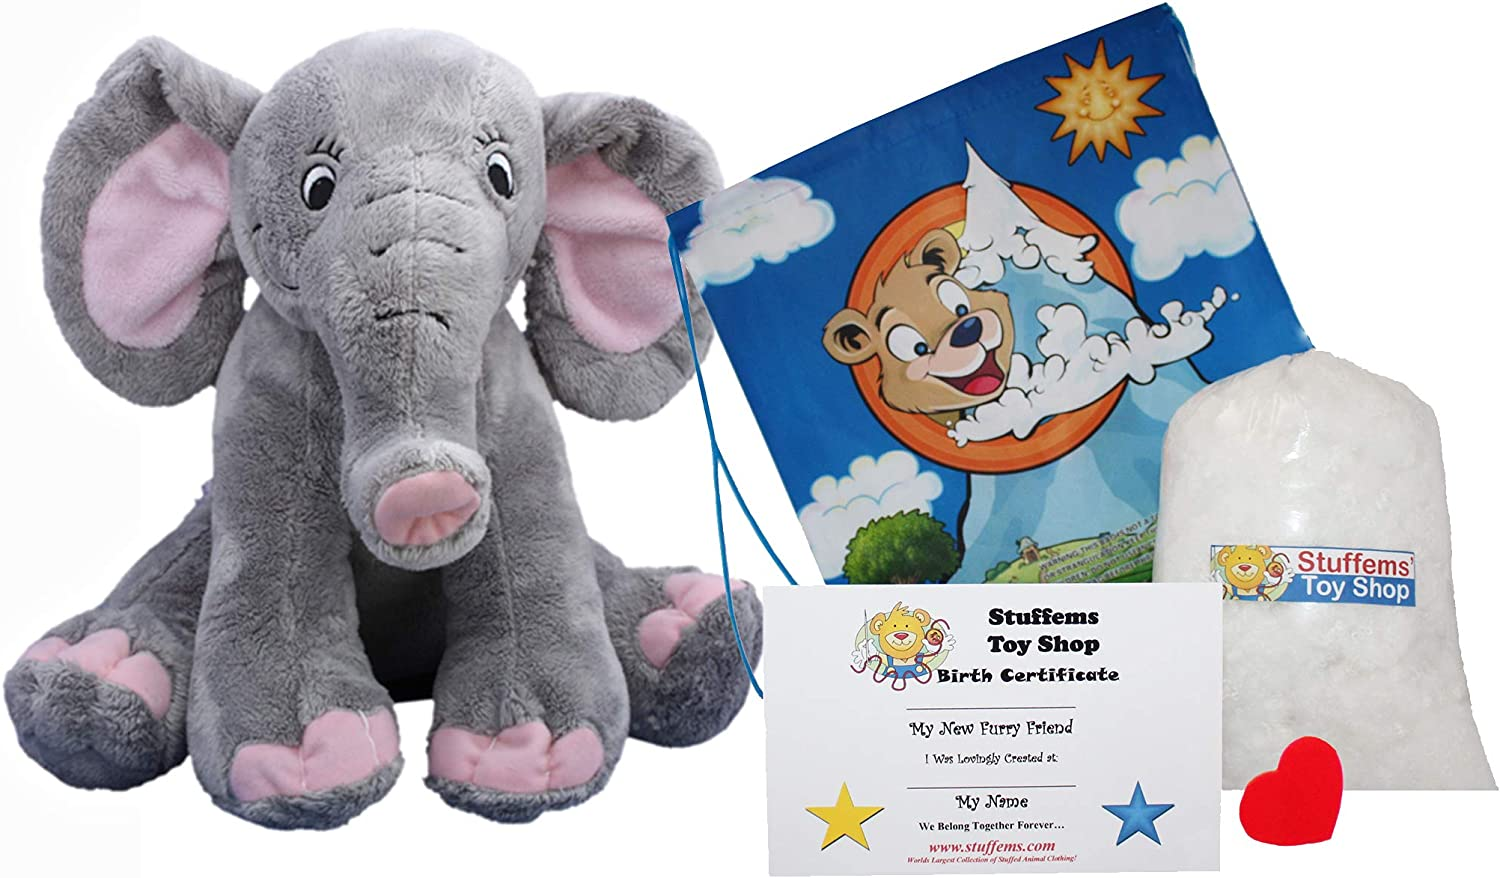 Make Your Own Stuffed Animal Pink Elephant 16 Stuffems Toy Shop Kit With Cute Backpack No Sew